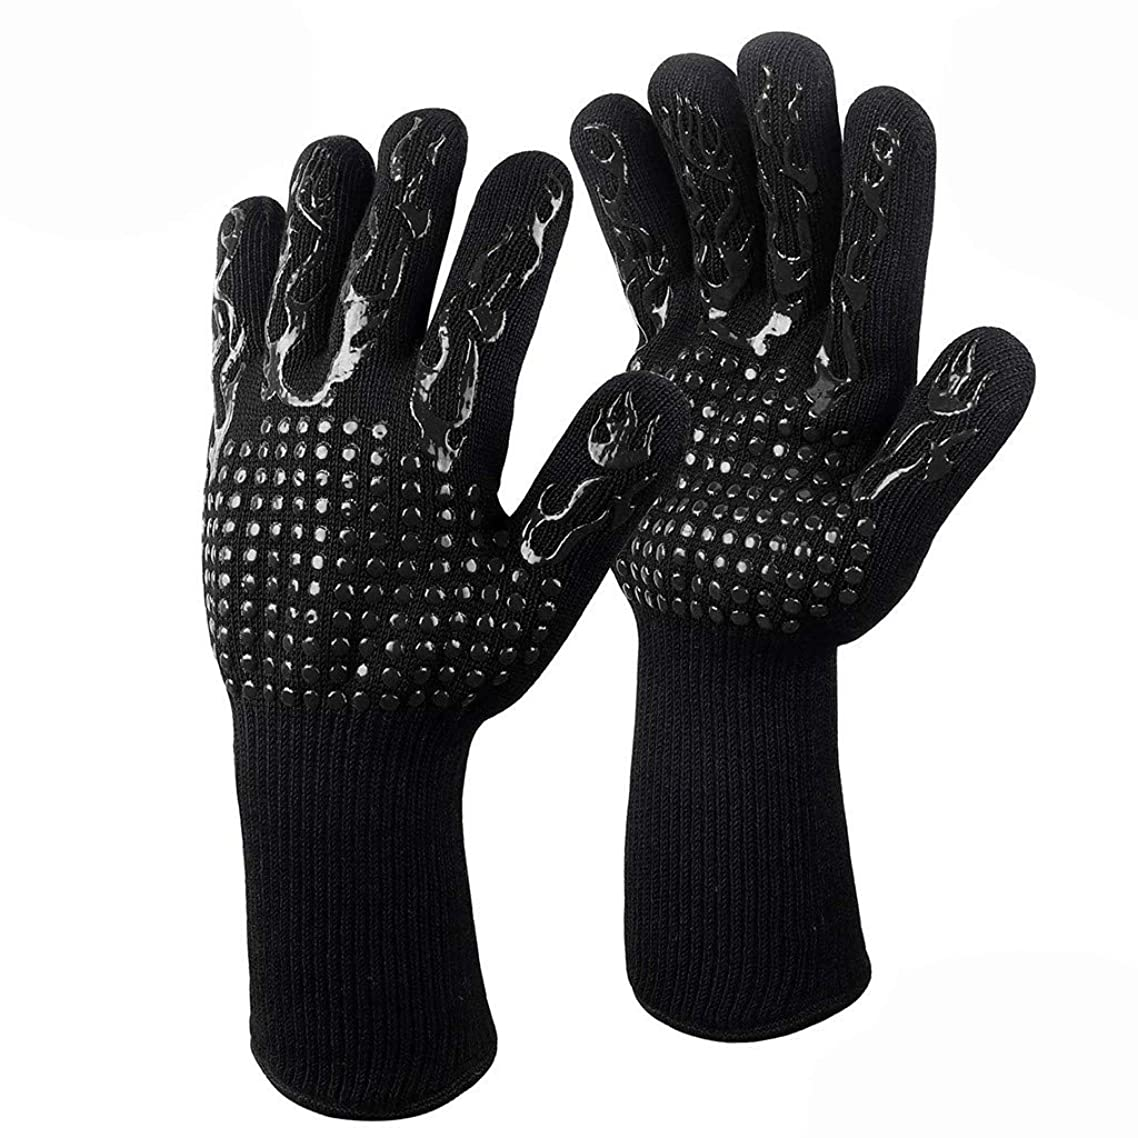 Fitfulvan Grilling Cooking Gloves Extreme Heat Resistant Oven Welding Gloves Rubber Anti-Scald Kitchen Gloves (Black)